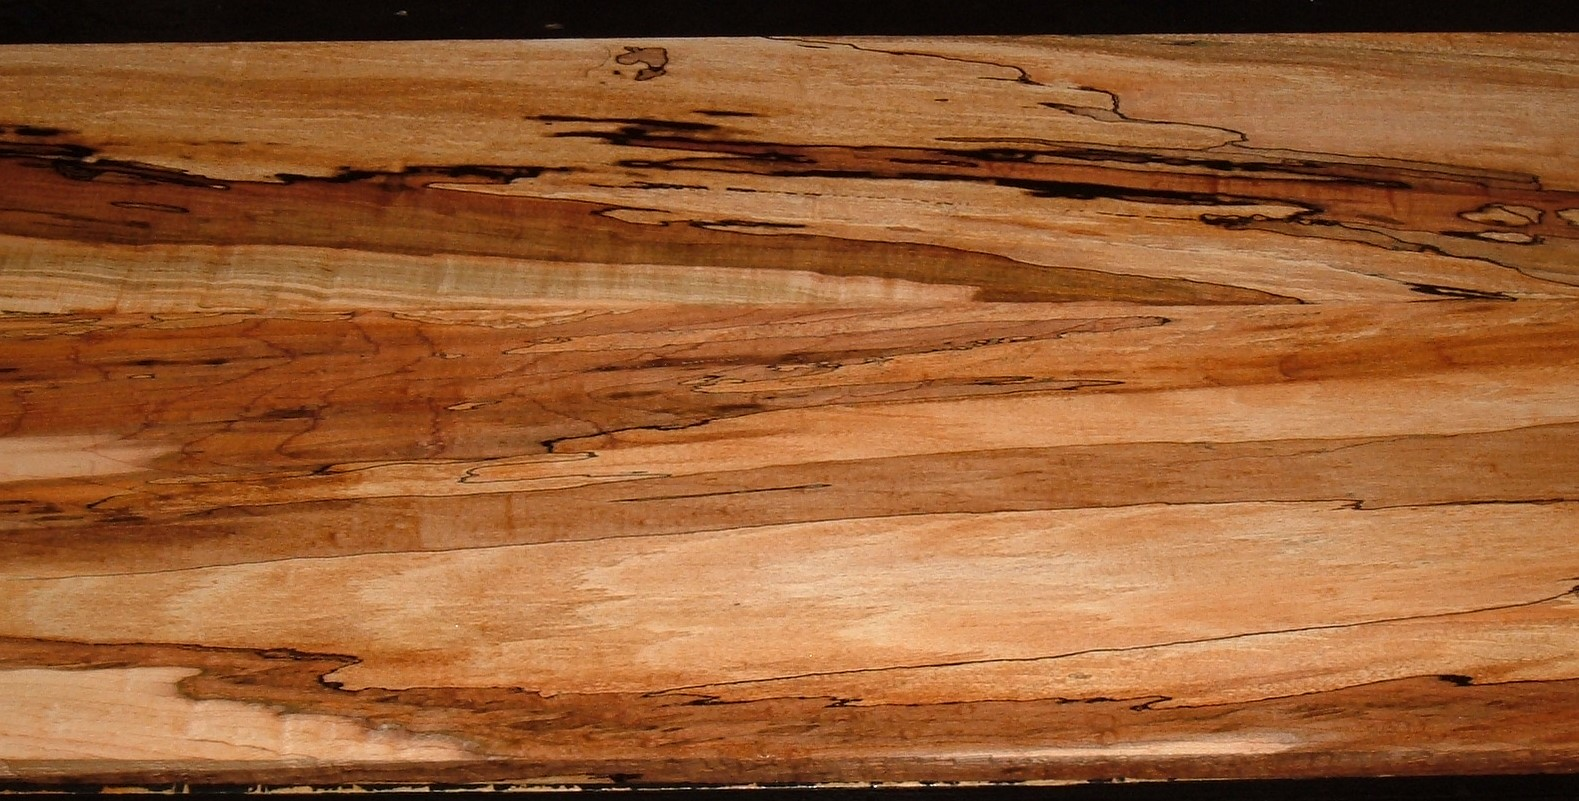 SM2005-30JJ, 2 bds, 3/4x6x45, 11/16x8x45, Spalted Hard Maple